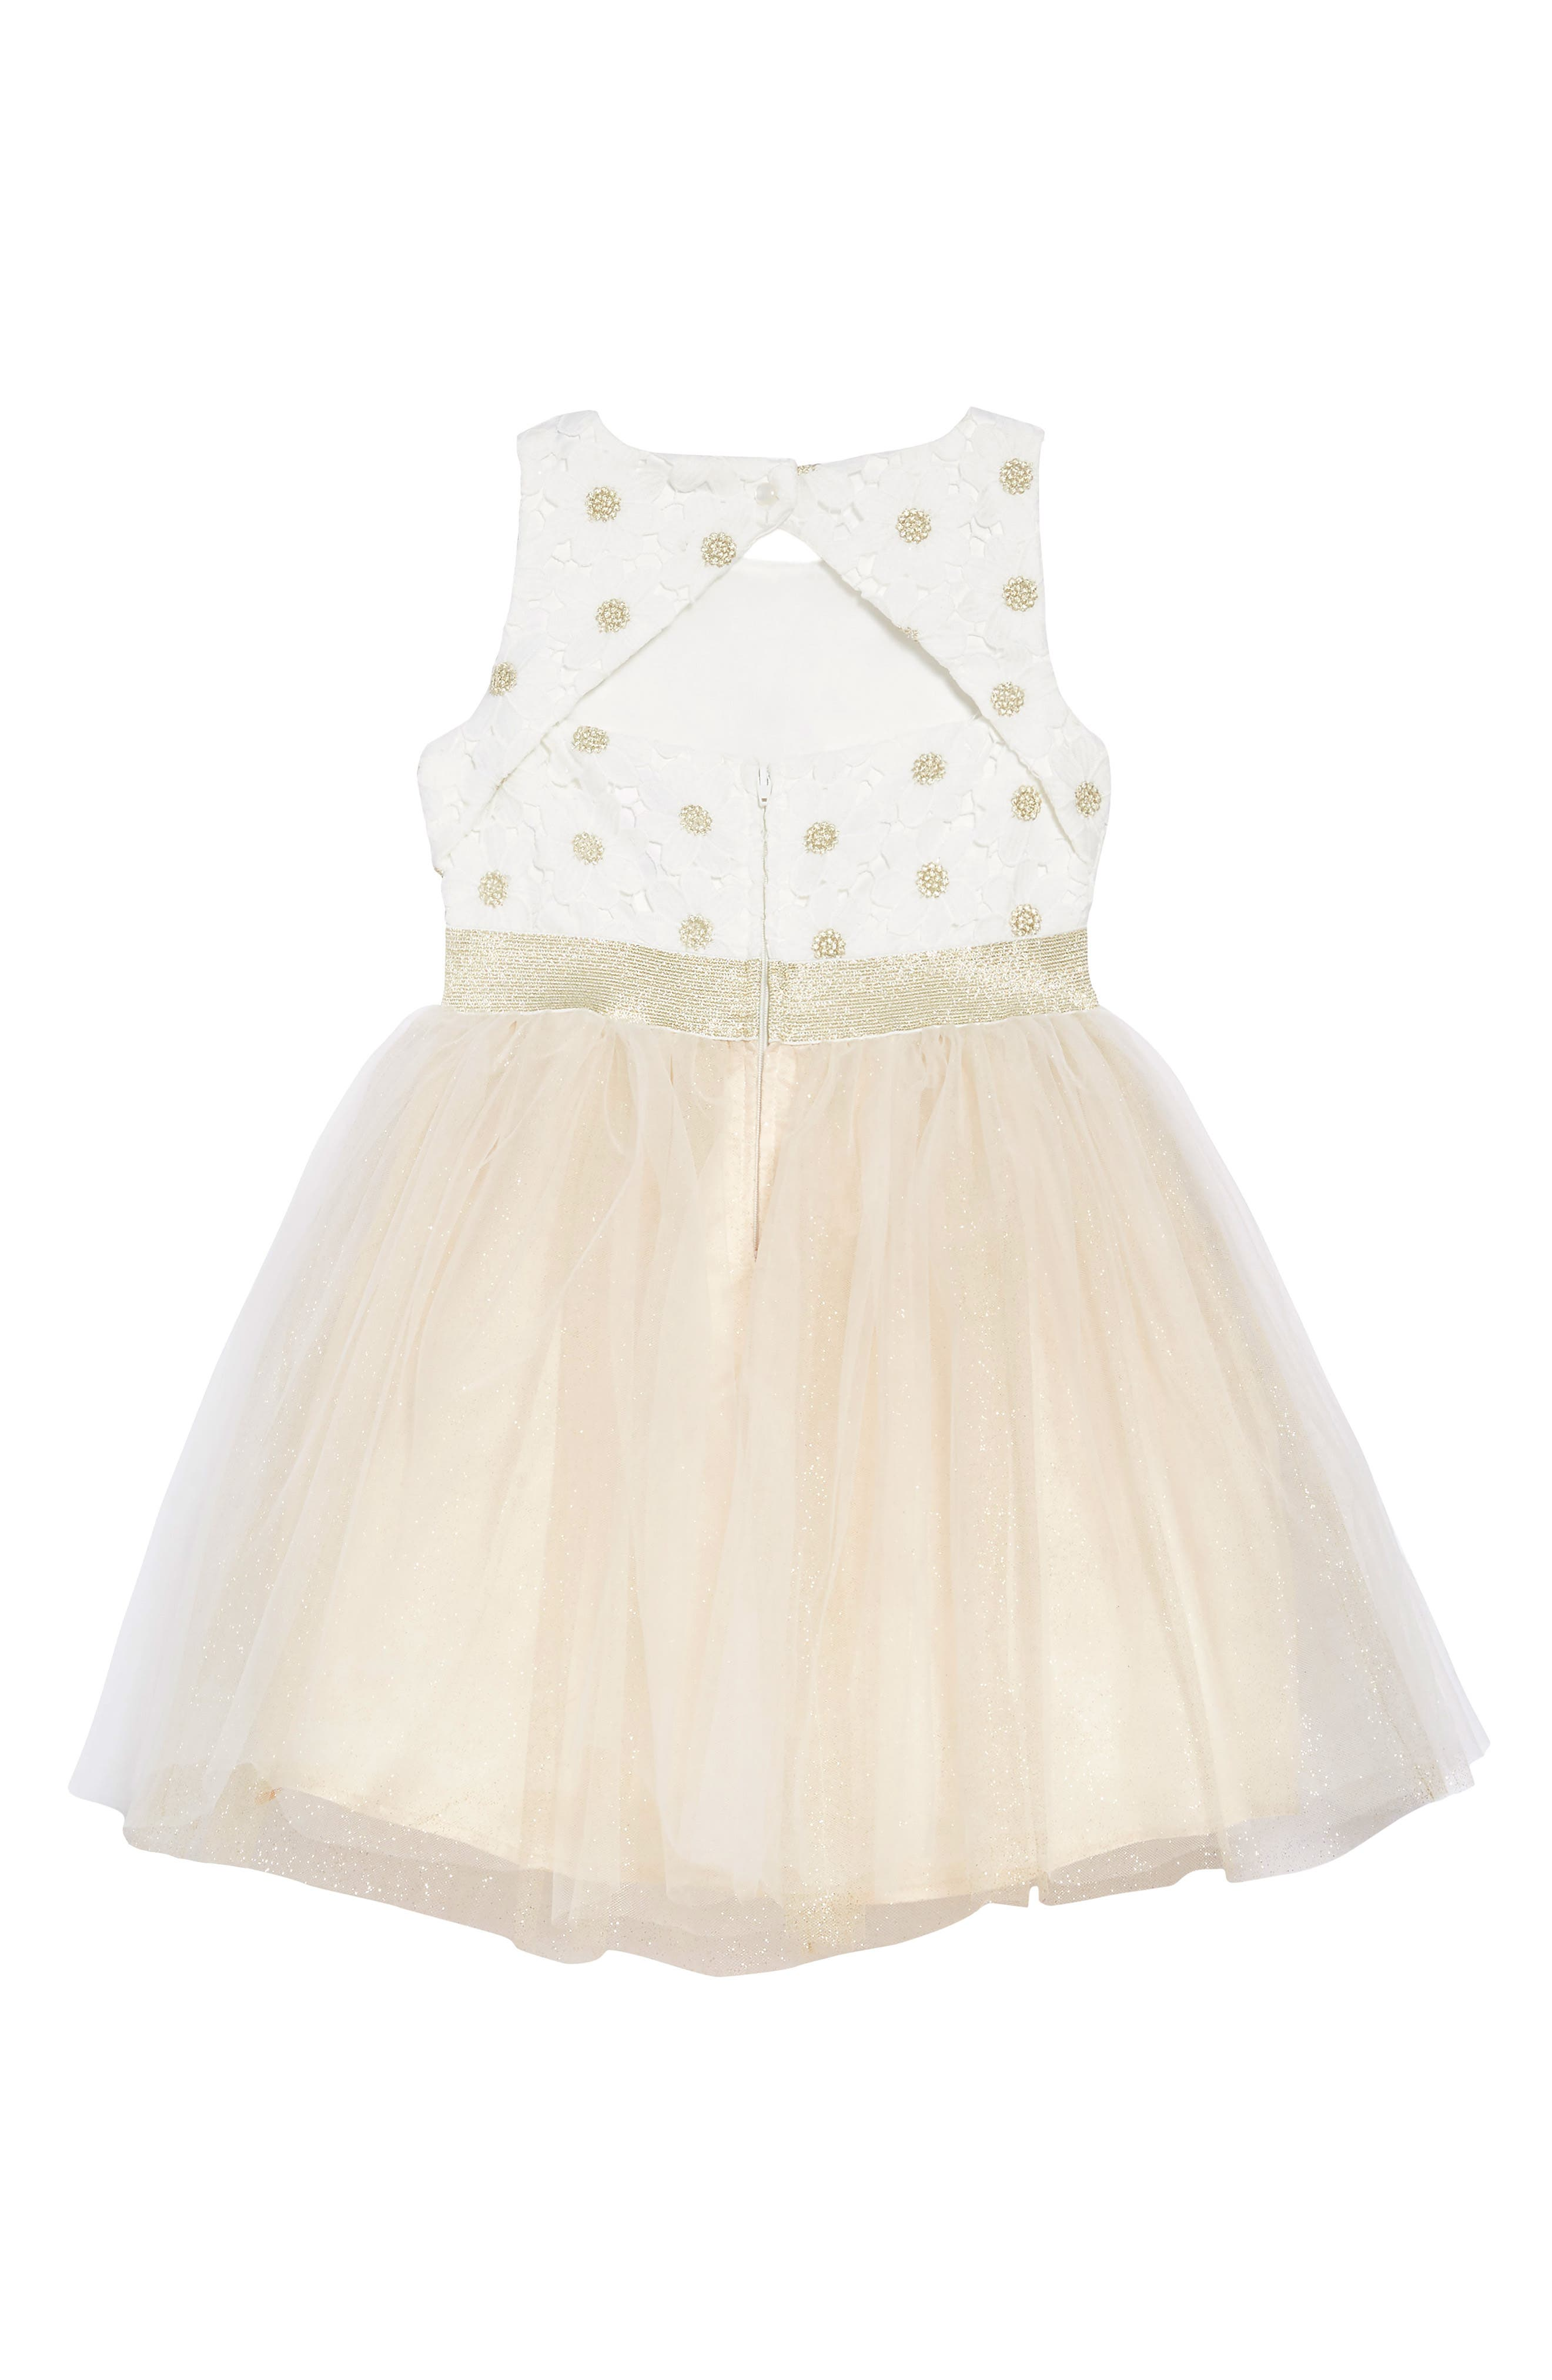 Daisy Fit & Flare Dress,                             Alternate thumbnail 2, color,                             IVORY/ CHAMPAGNE